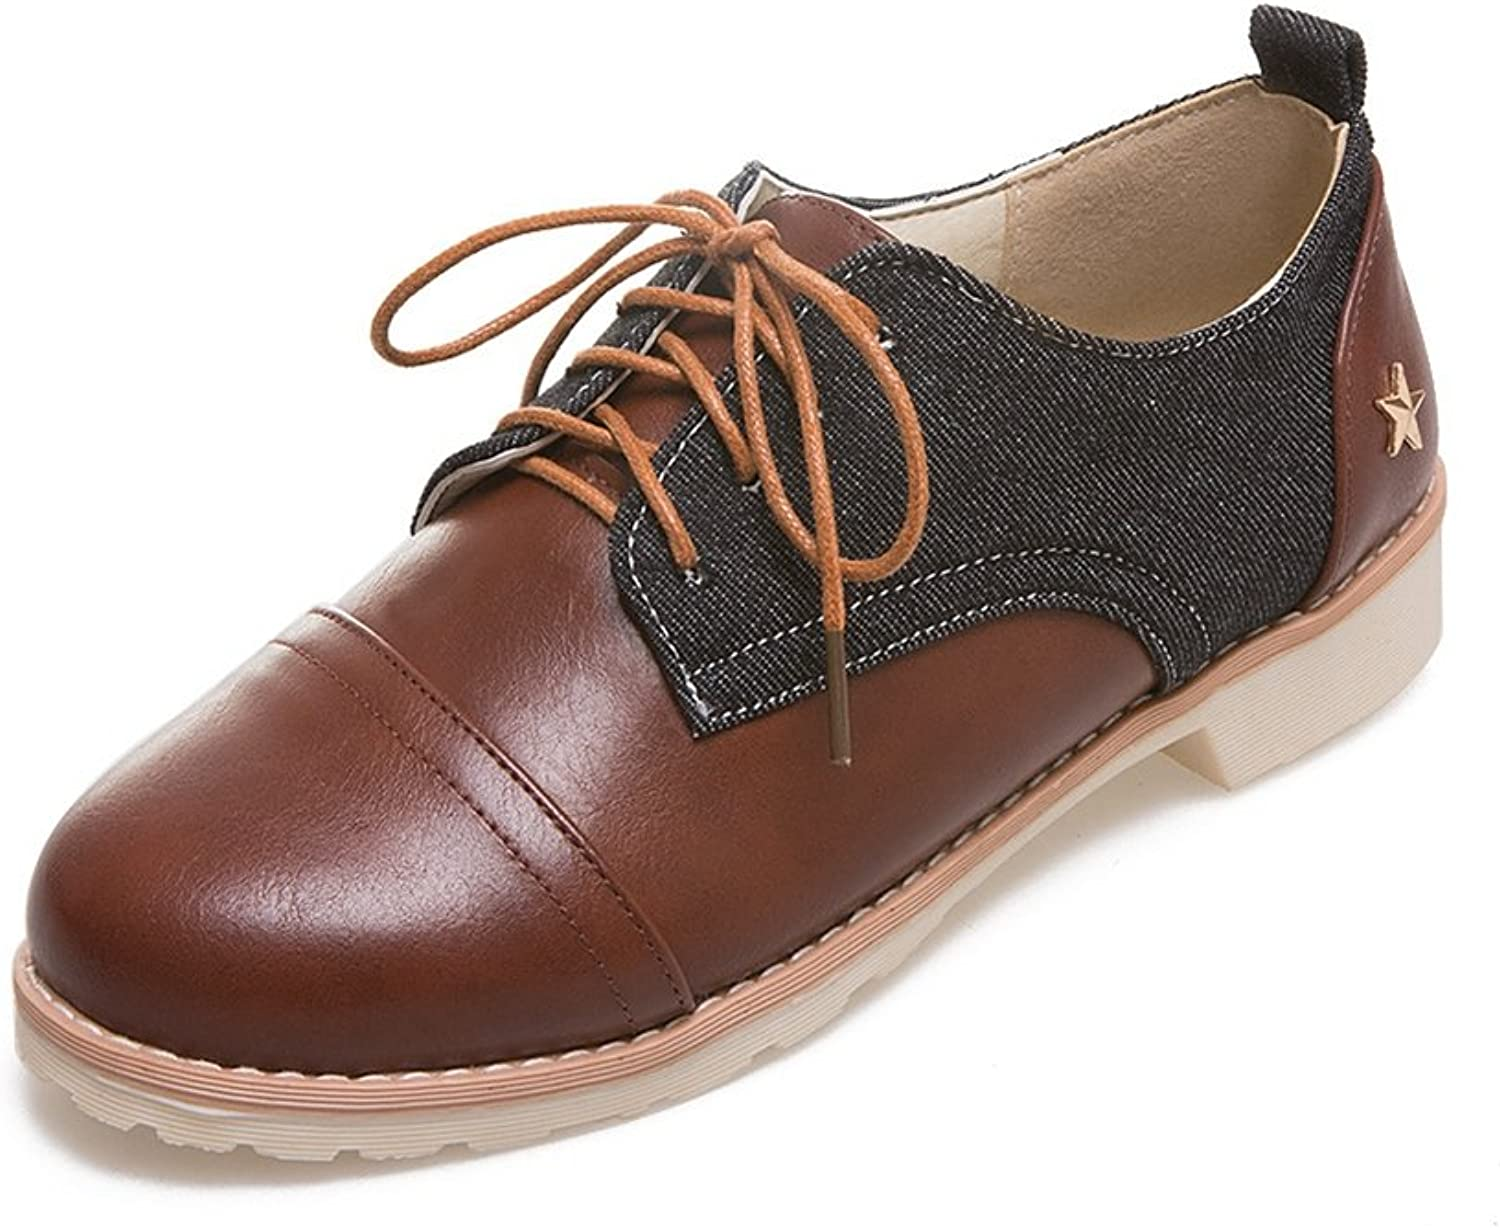 T-JULY Women's Retro Oxfords shoes - Comfy Lace-up Low Heel Round Toe Two Tone Casual shoes